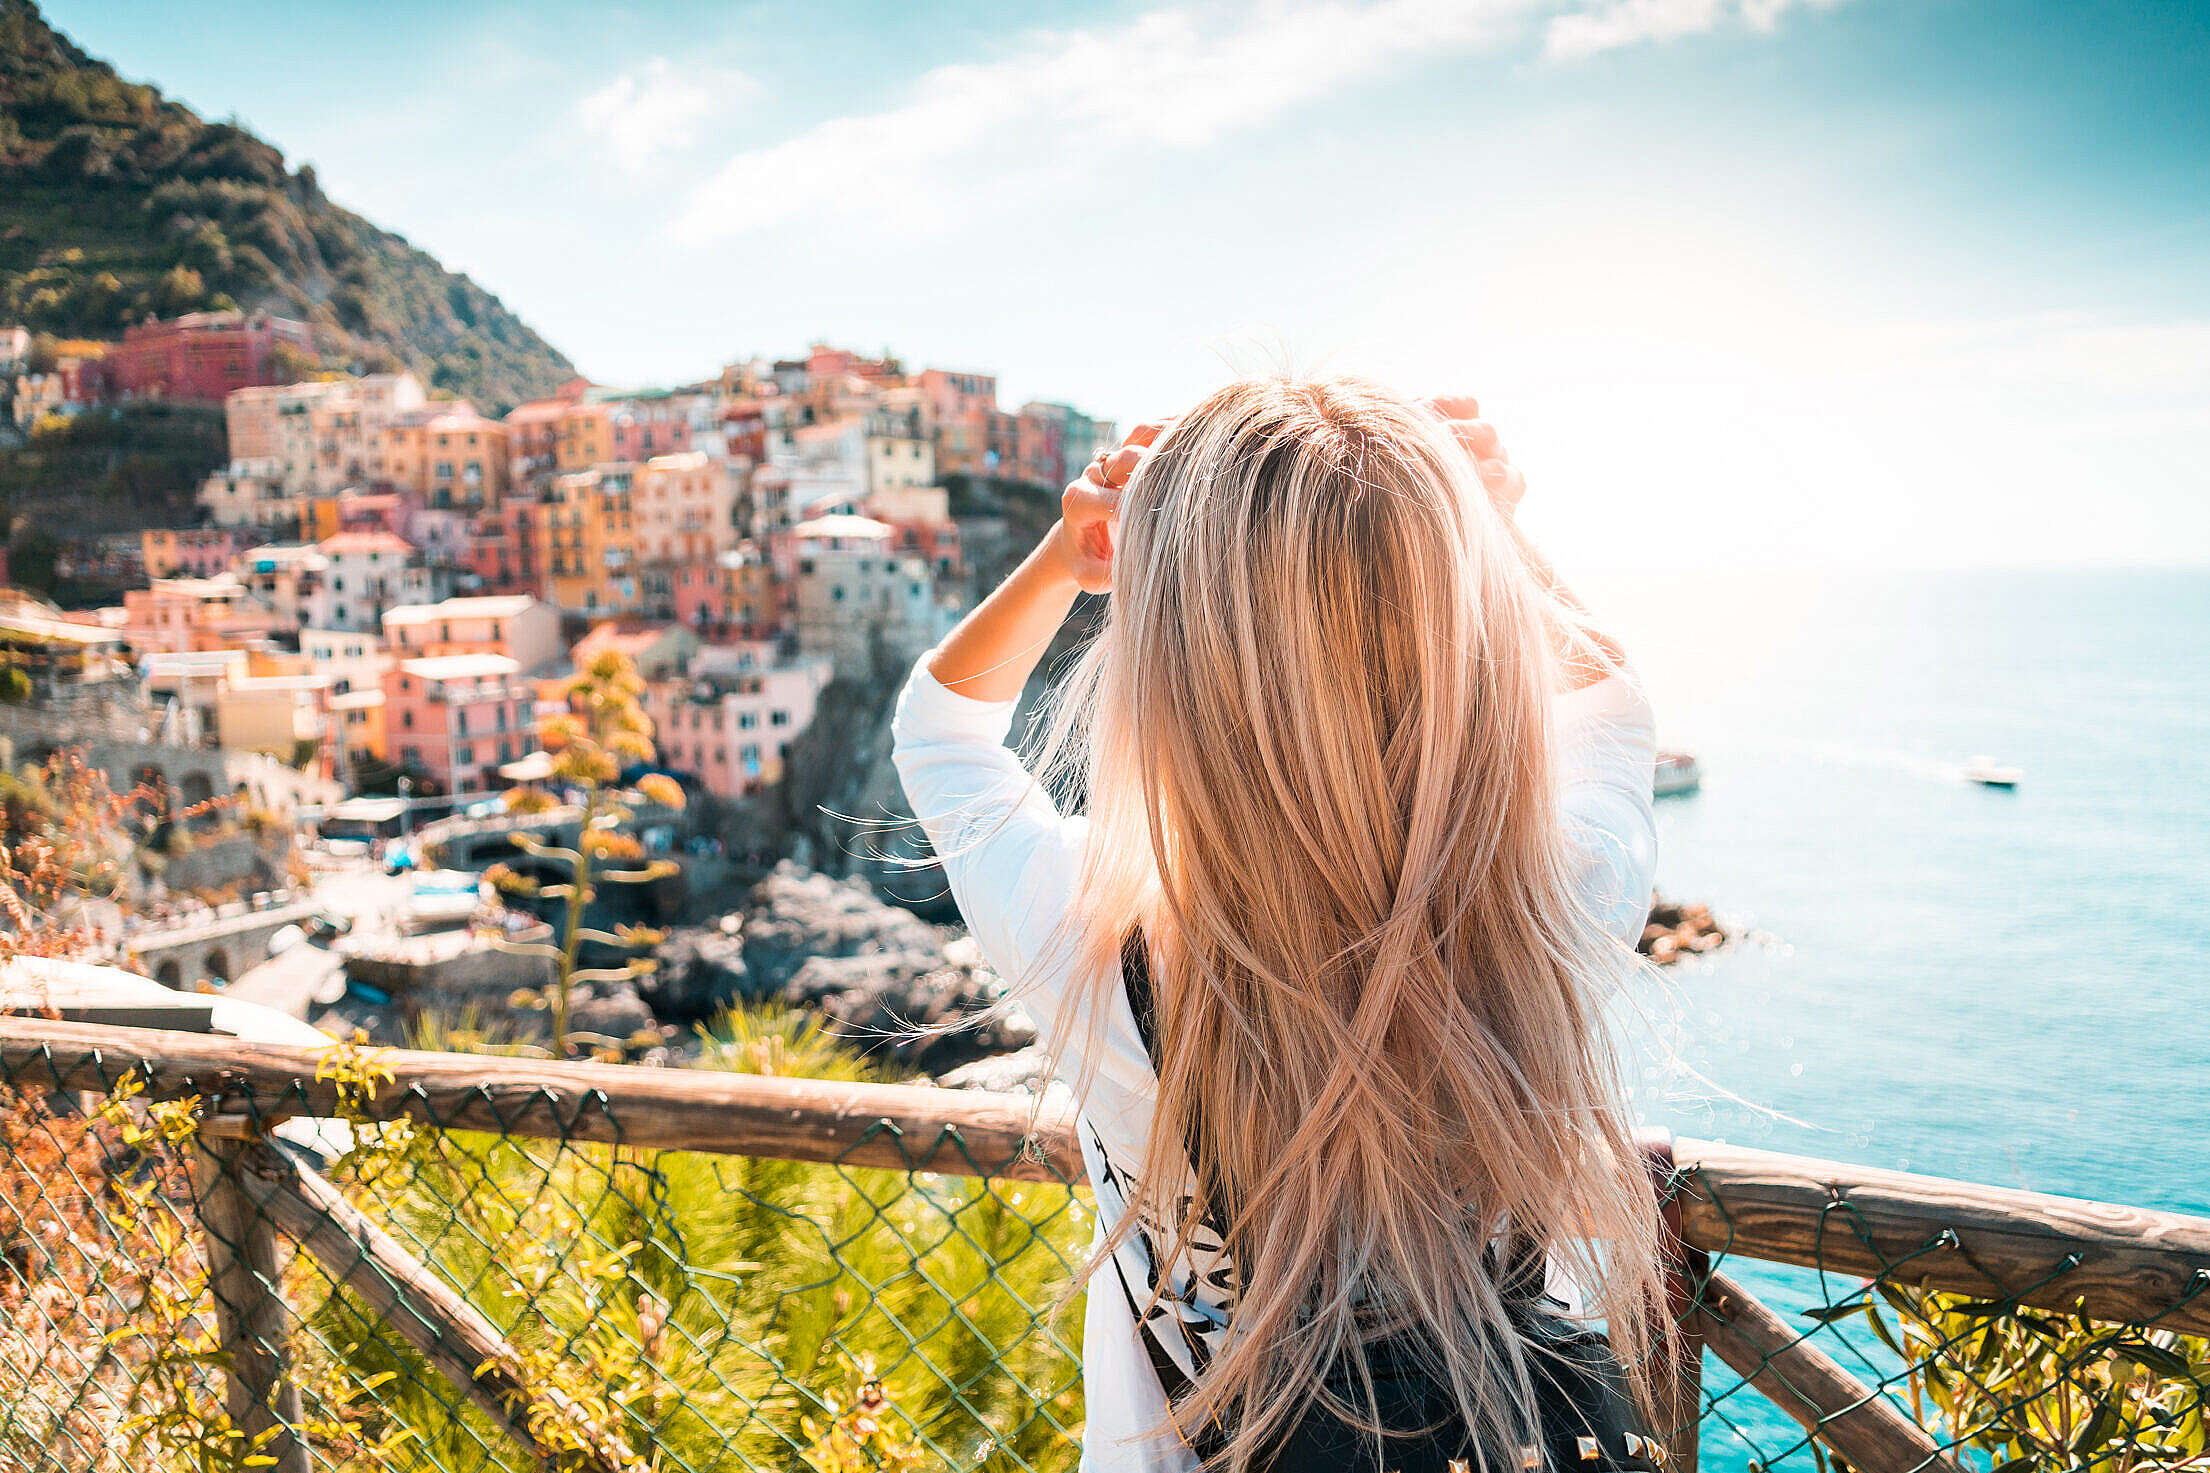 Travel Girl in Cinque Terre, Italy Free Stock Photo